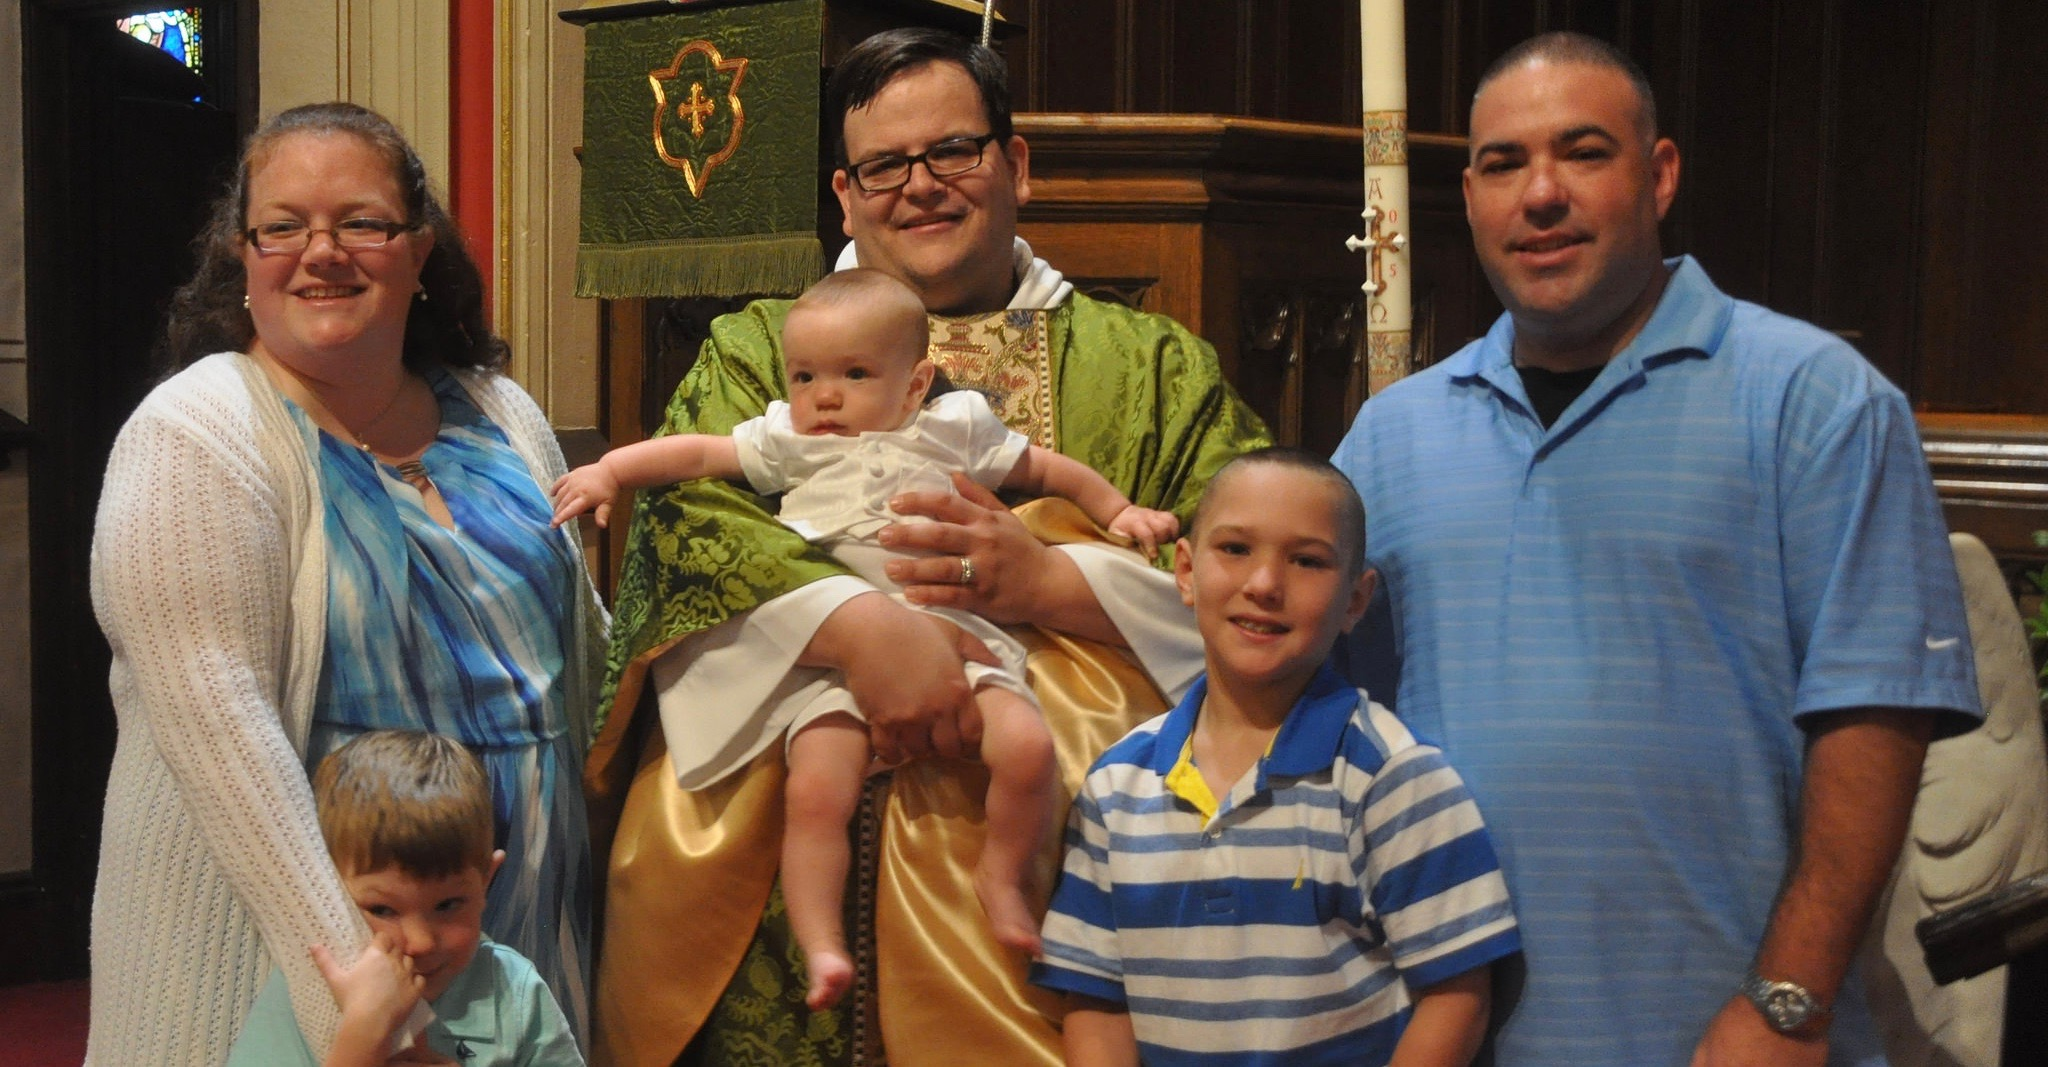 Family gathered for baby's baptism